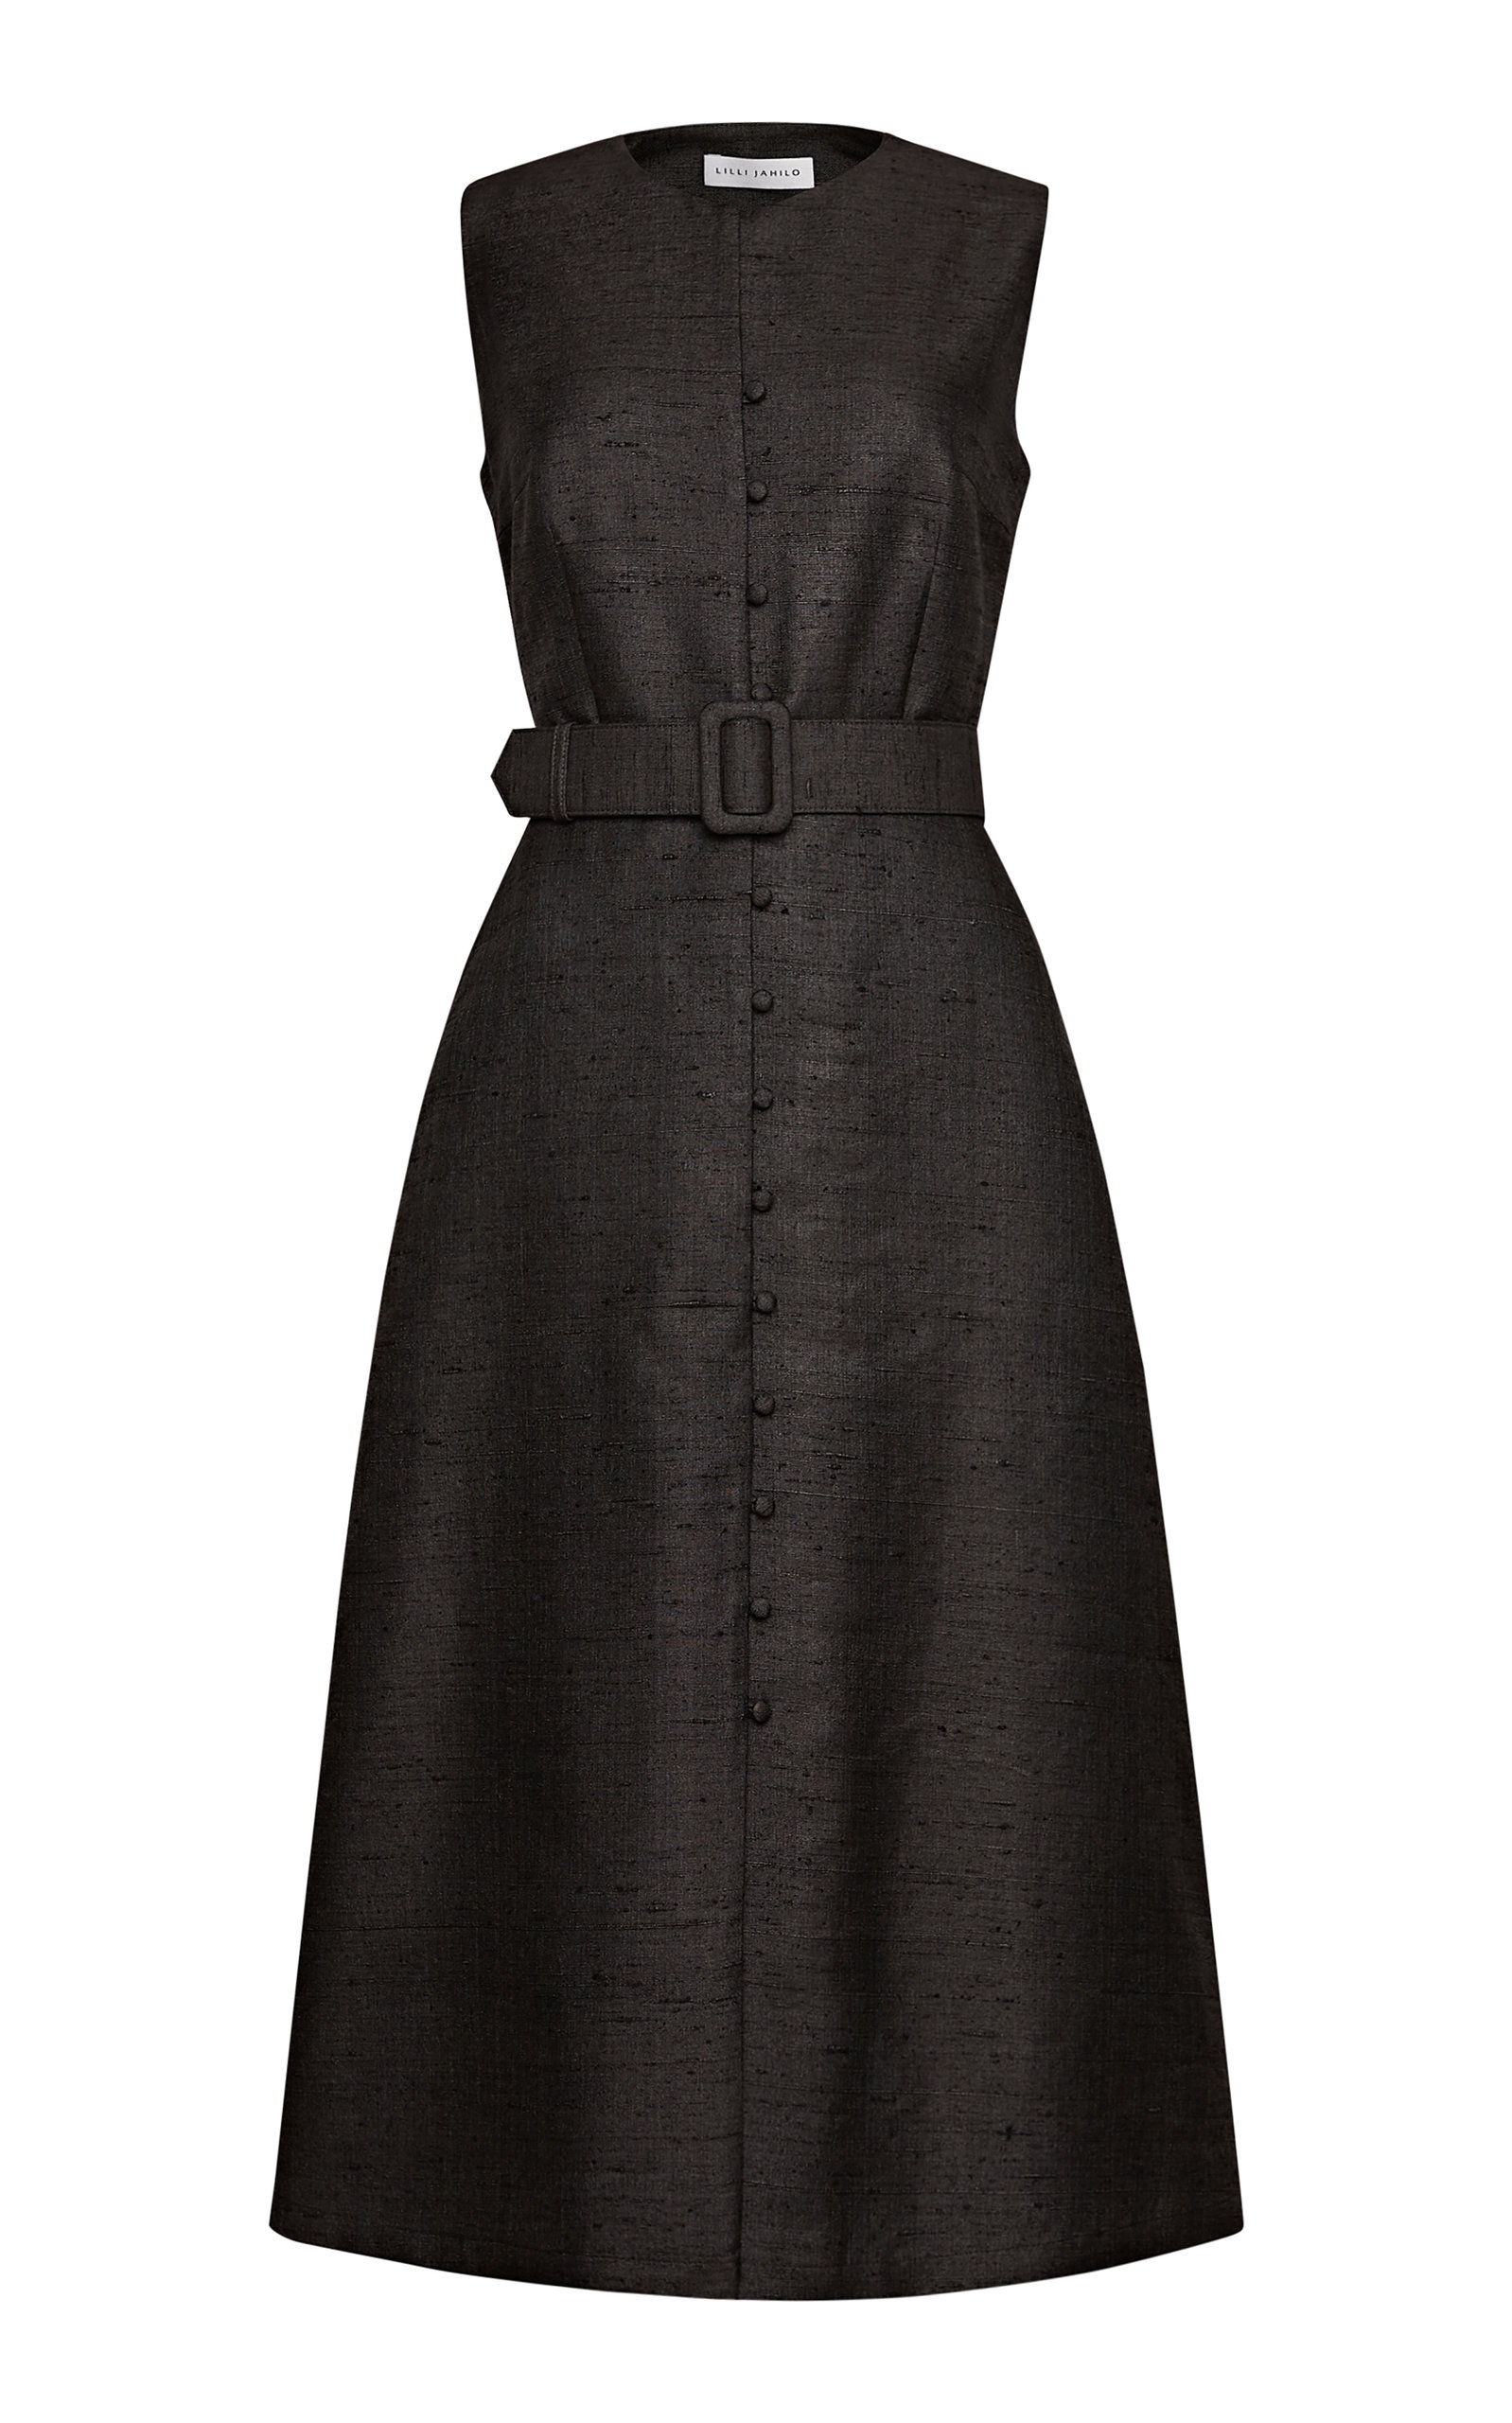 Buy Lilli Jahilo Winslet Silk Blend Button-Up Dress With Belt online, shop Lilli Jahilo at the best price